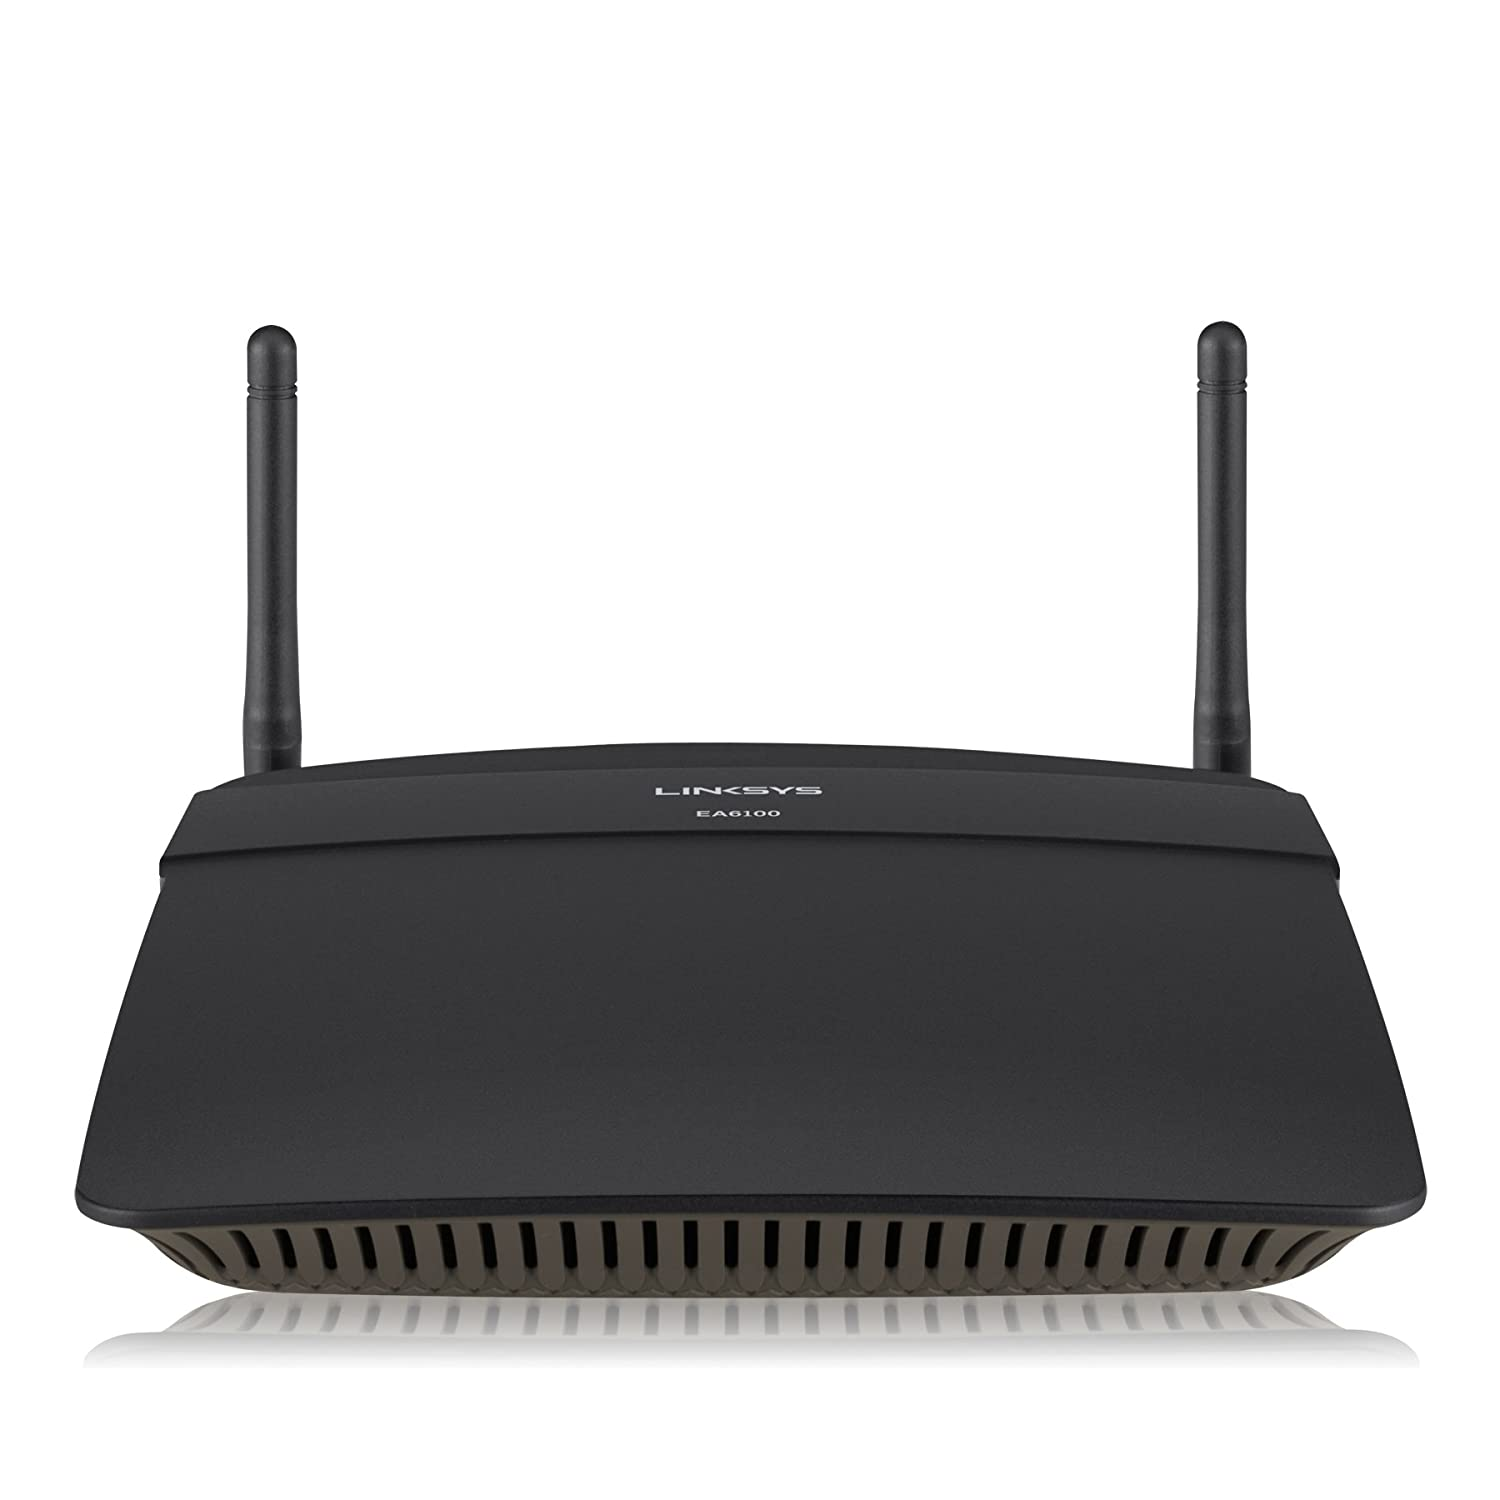 The Best Home Wireless Router 4